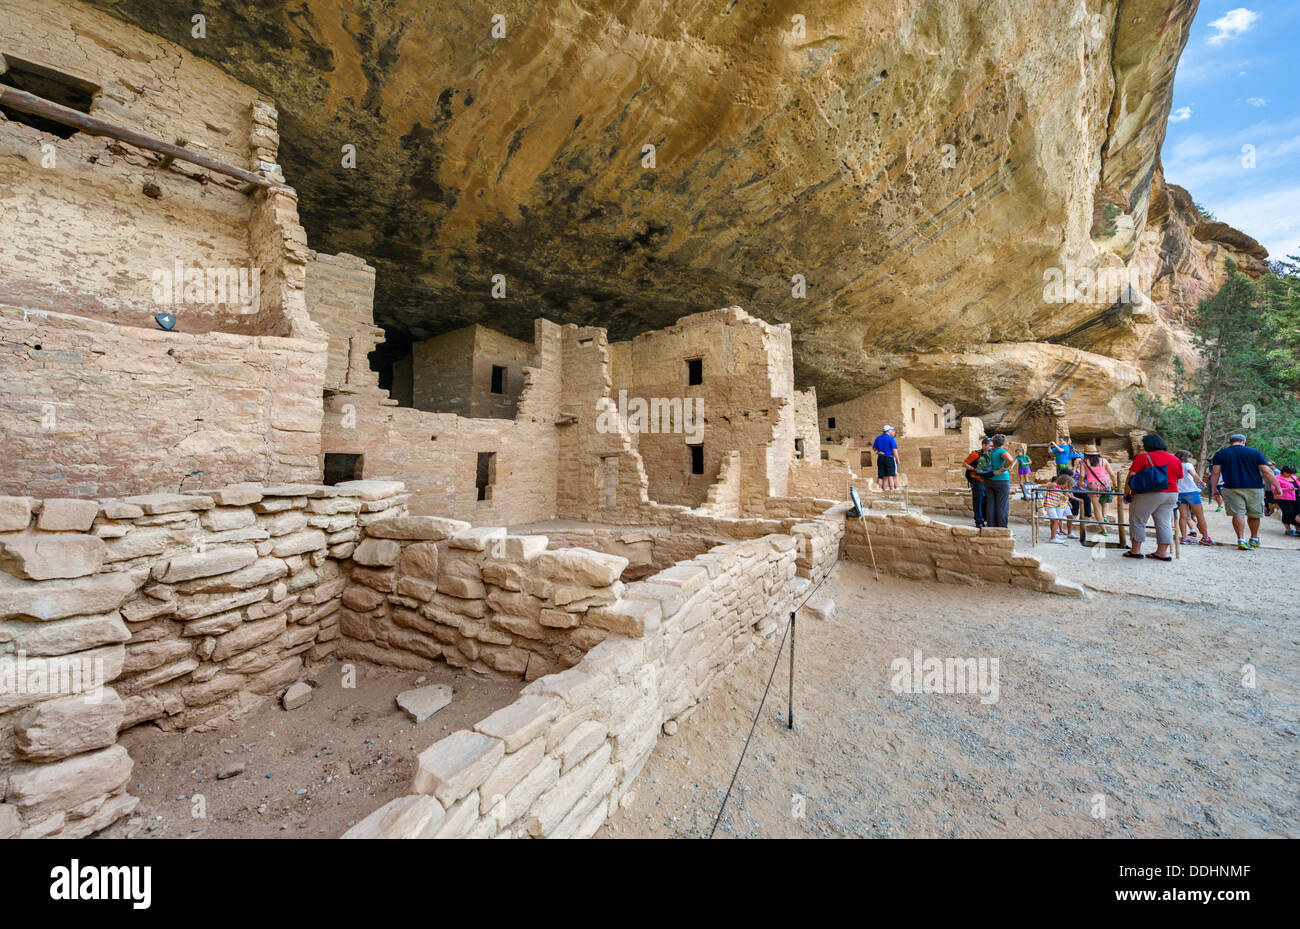 Tourists at Spruce Tree House ruins, ancient Anasazi pueblo dwellings, Mesa Verde National Park, Cortez, USA - Stock Image